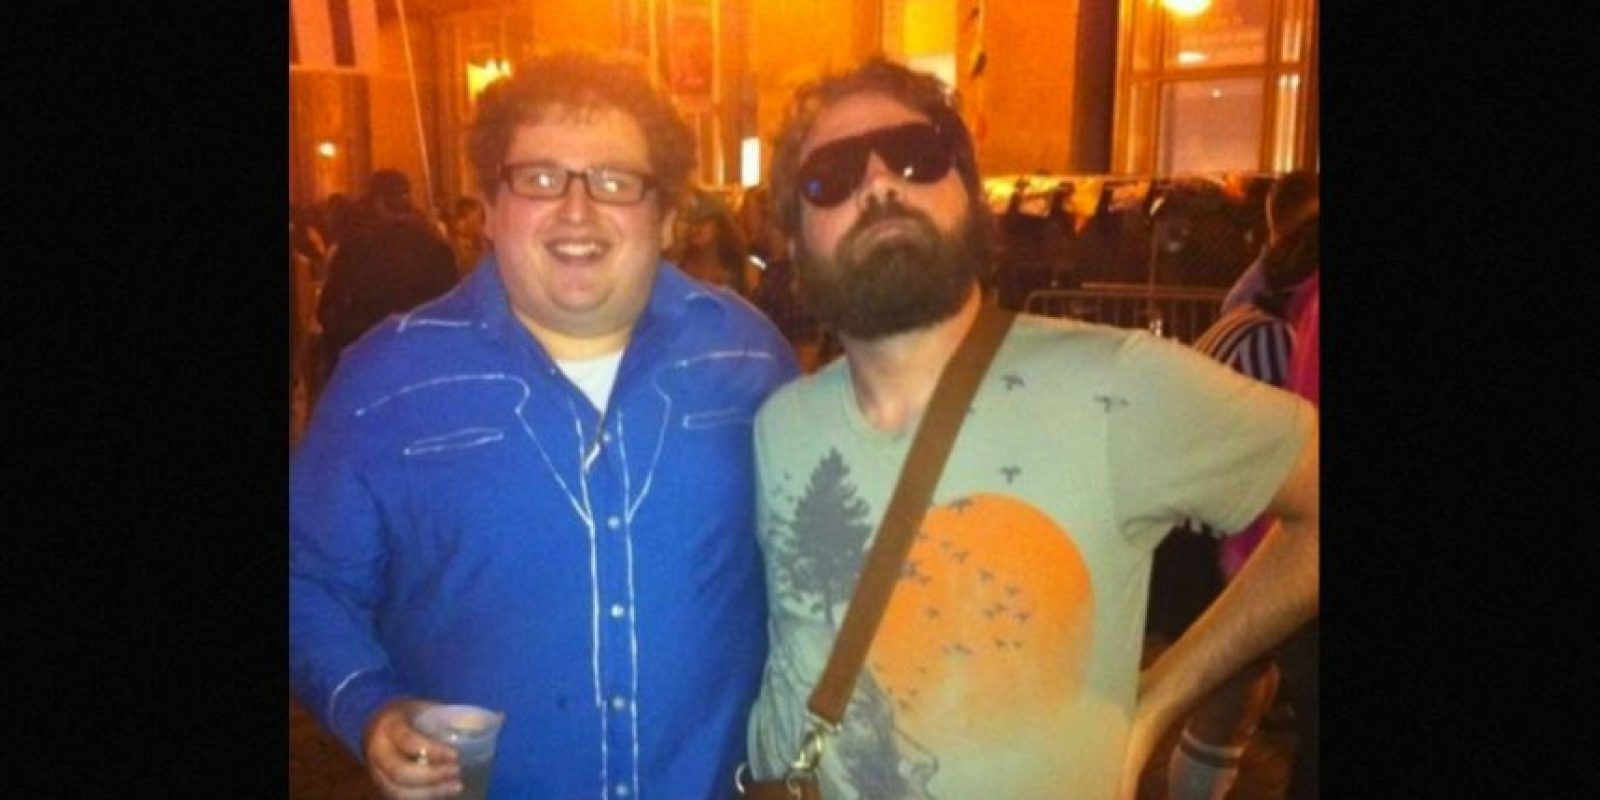 Iguales a Zach Galifianakis y Jonah Hill Foto: Reddit/Getty